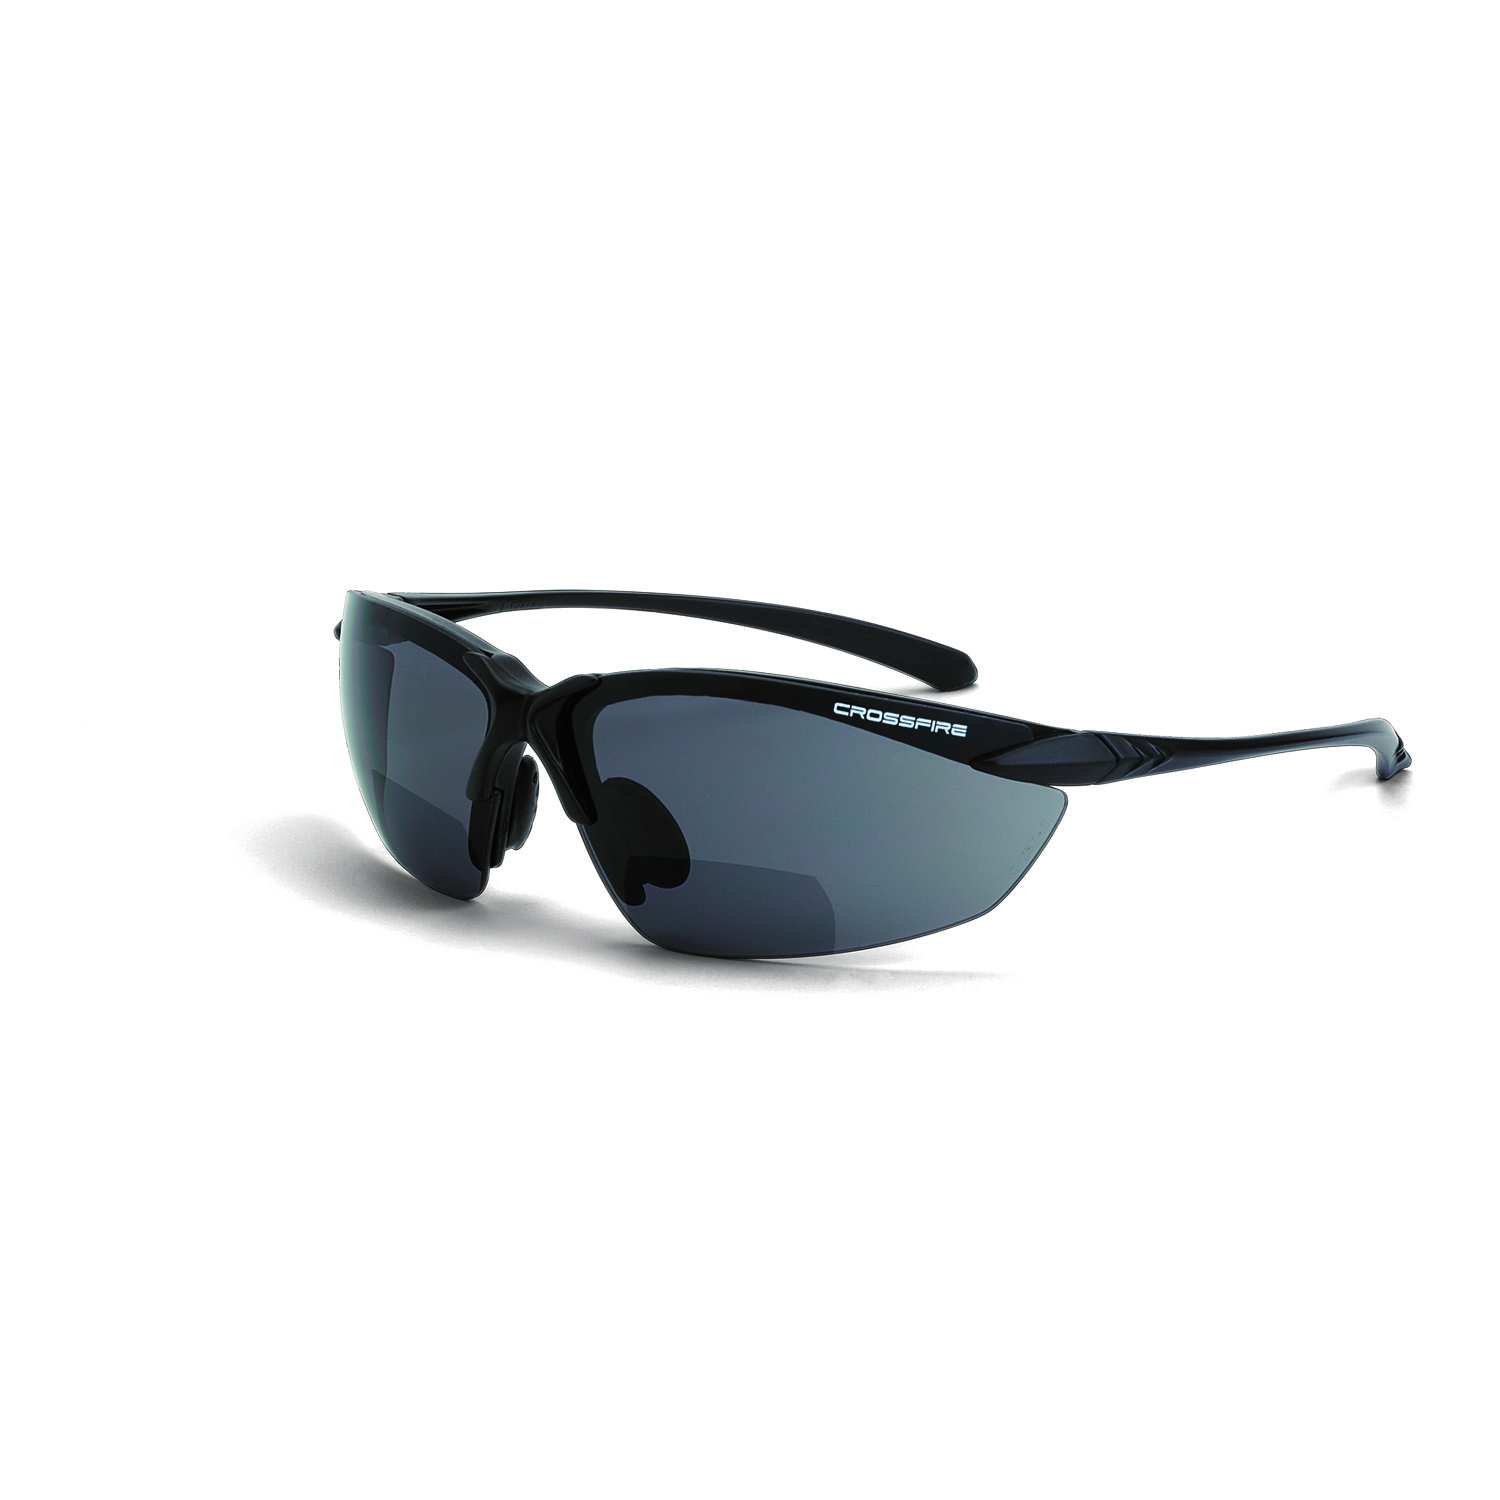 Crossfire Sniper Bifocal Safety Eyewear